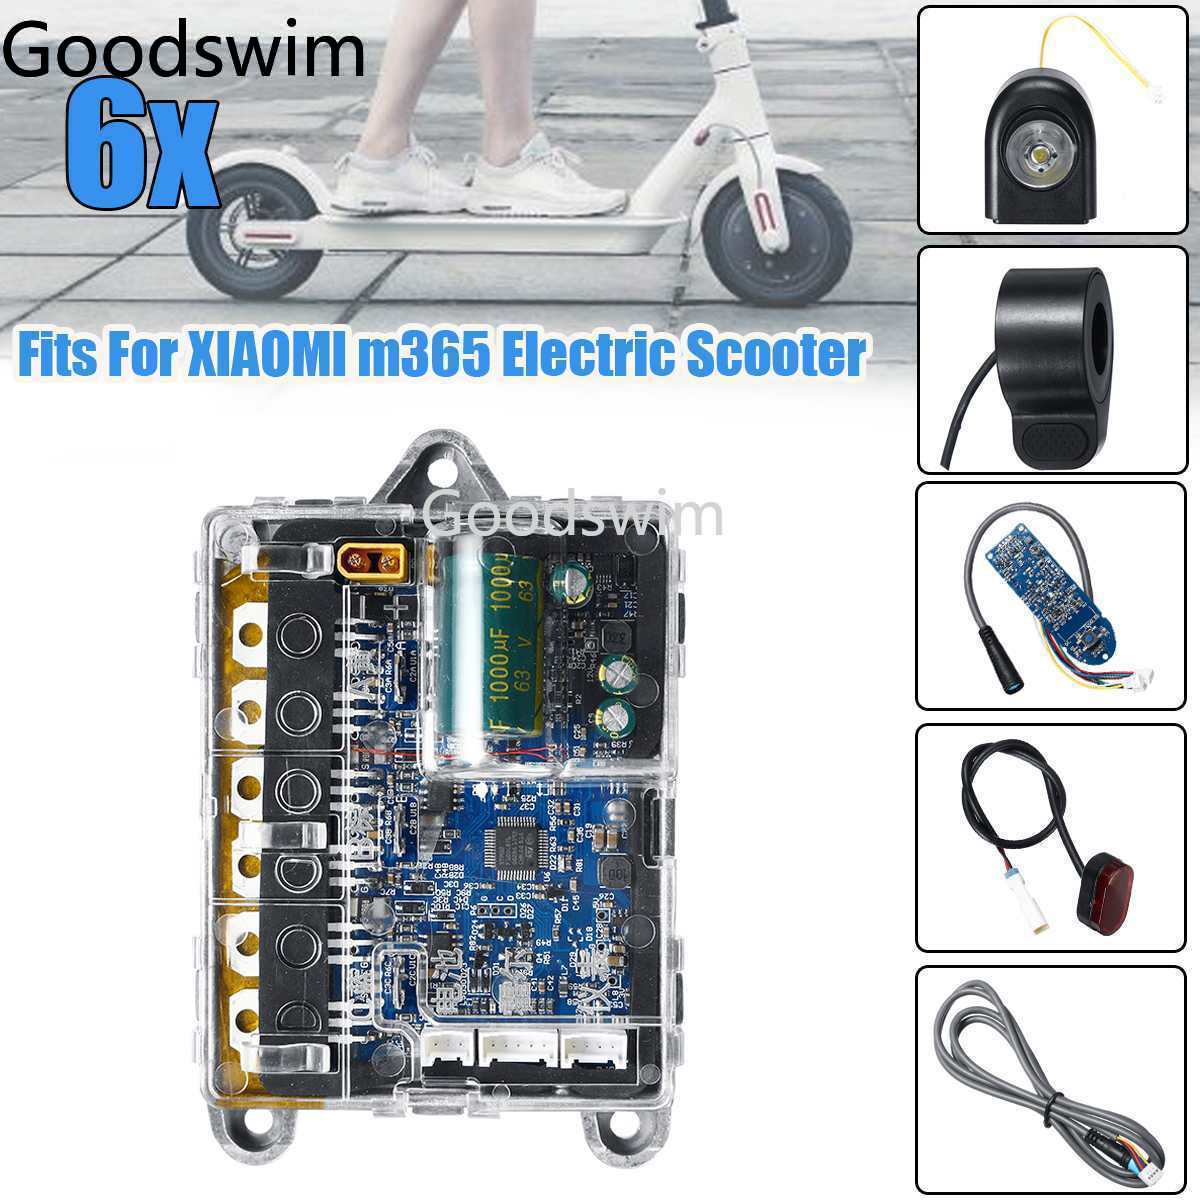 Xiaomi Scooter Parts For M365 M187 Electric Scooter Circuit Board Dashboard Controller Headlights Taillight Throttle Skateboard